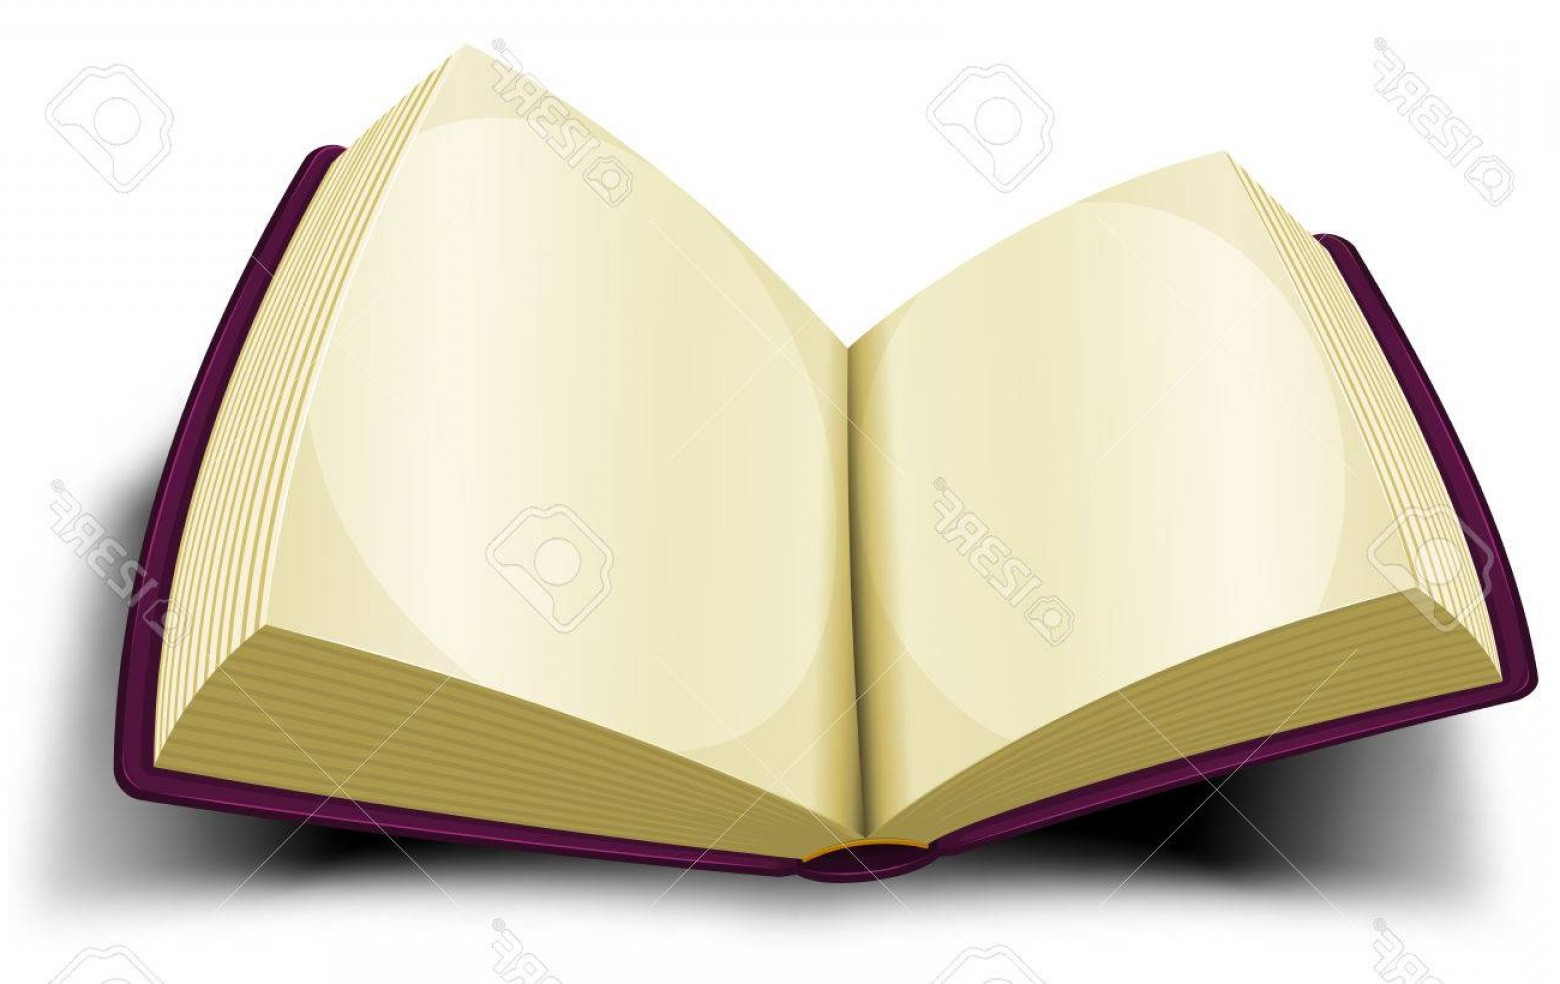 Cartoon Blank Open Book Vector: Photostock Vector Illustration Of A Cartoon Opened Purple Book With Blank White Pages